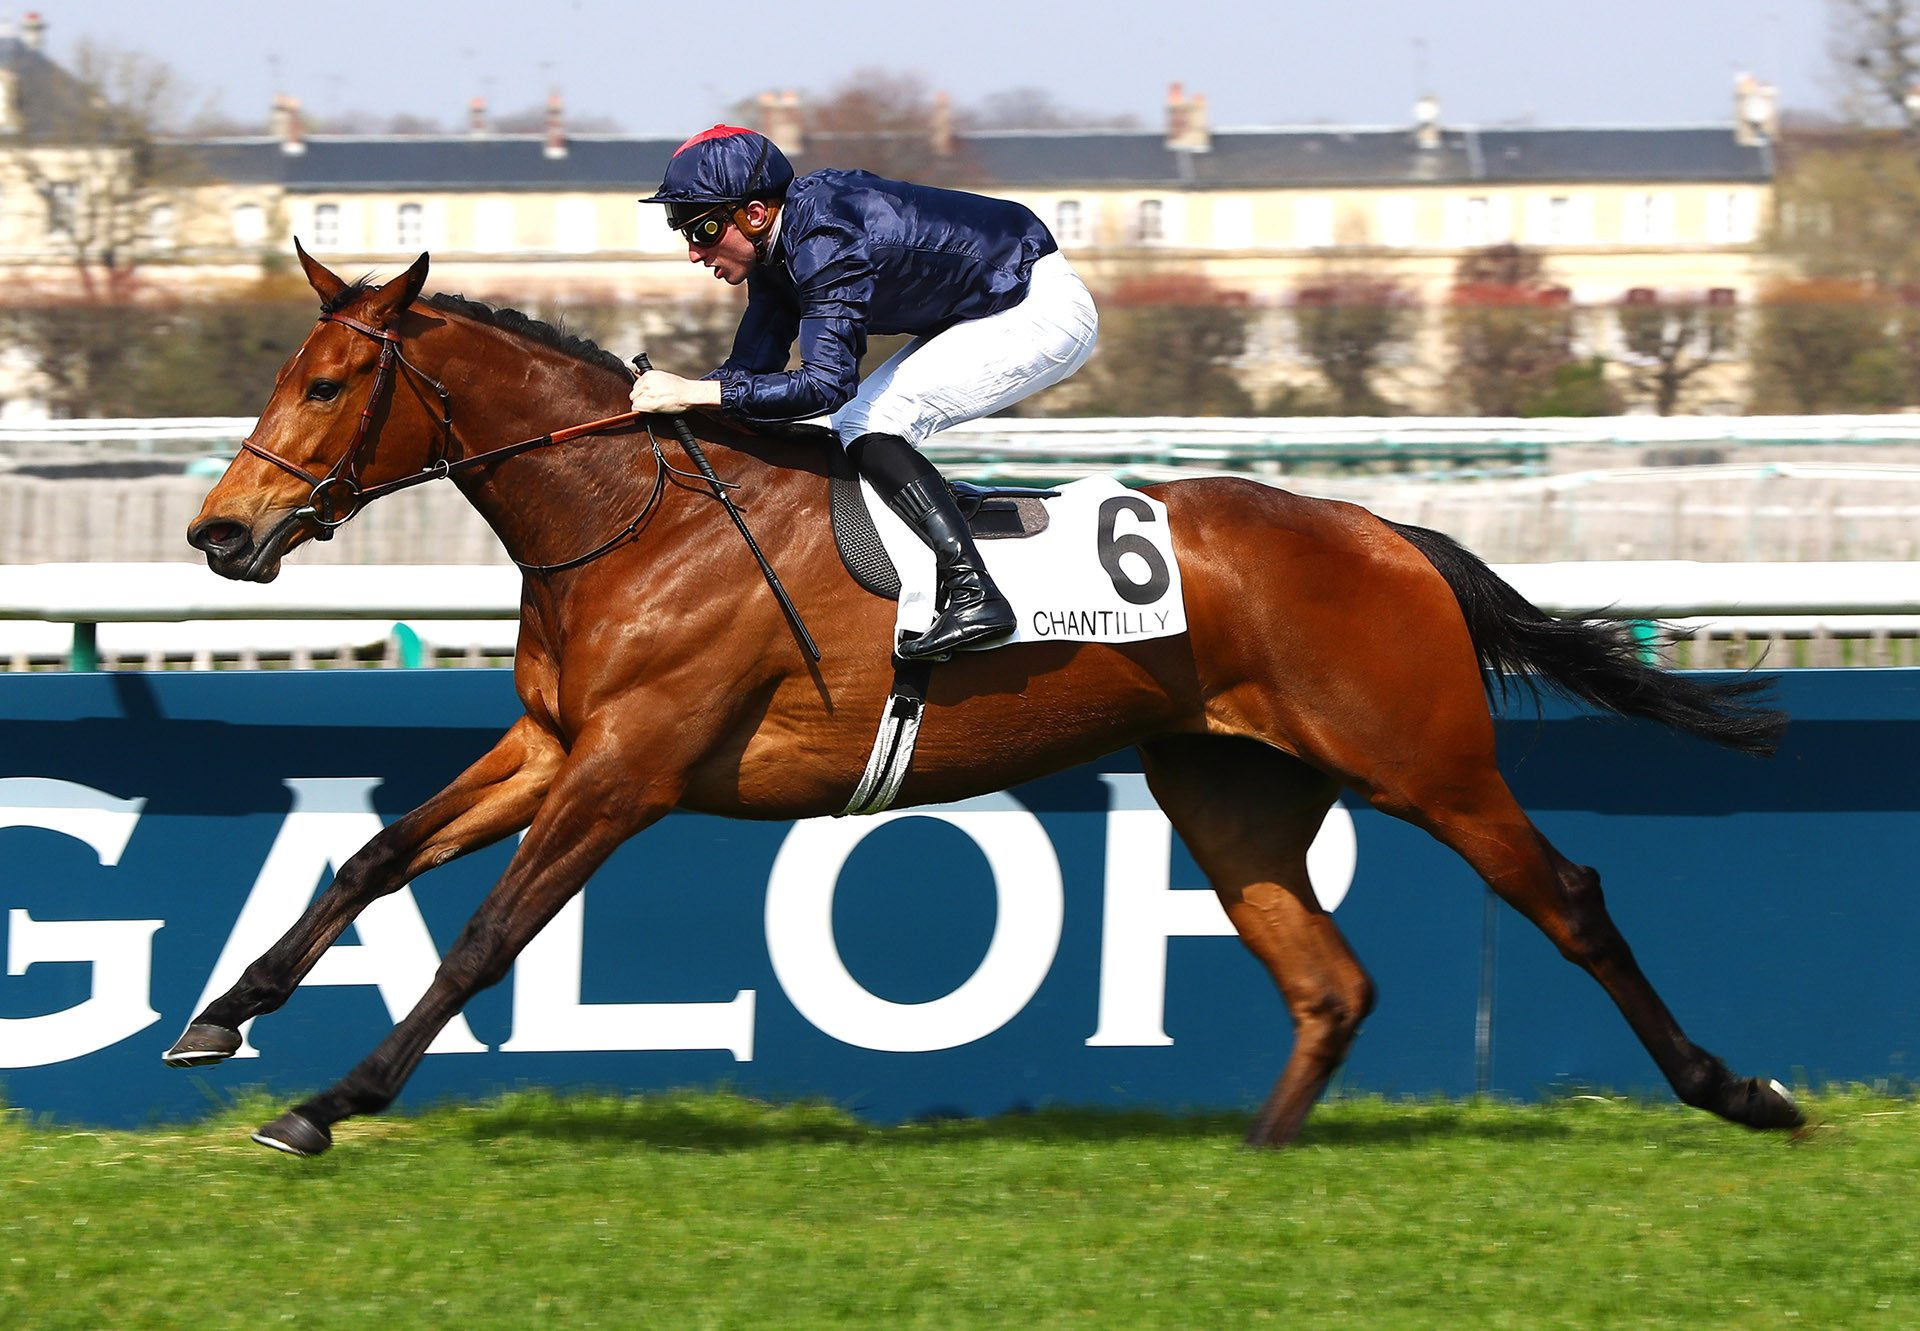 Villa Damore (Mastercraftsman) winning the Prix de Brunehaut at Chantilly